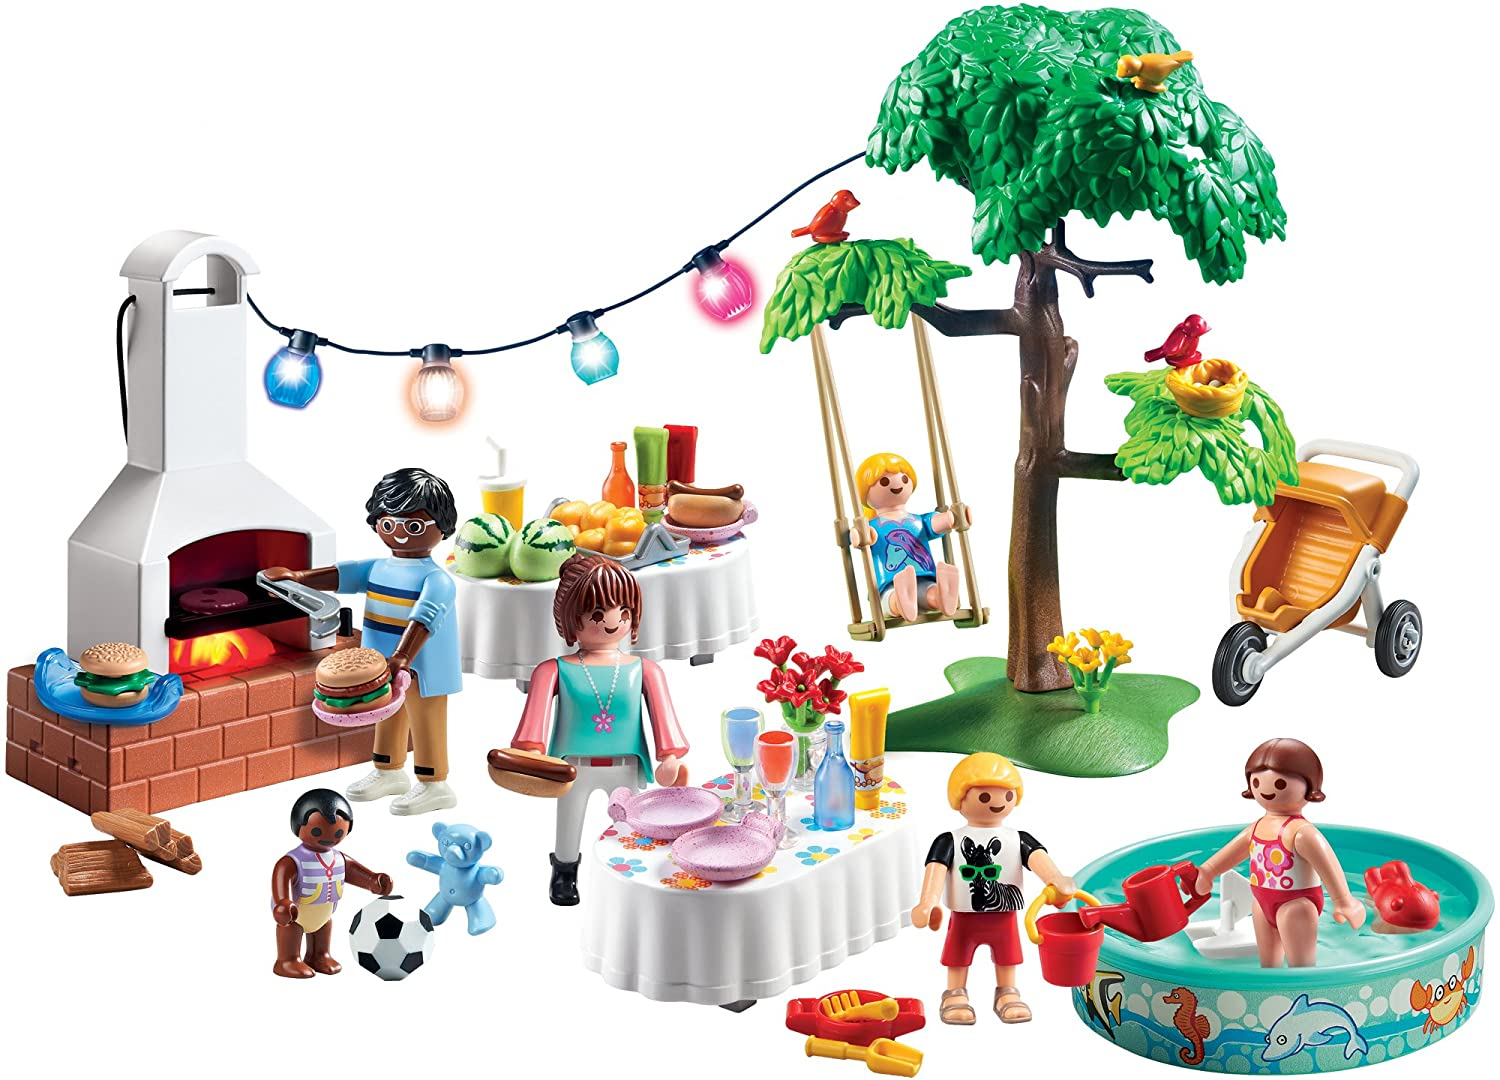 Amazon.com: PLAYMOBIL® Housewarming Party Building Set: Toys & Games